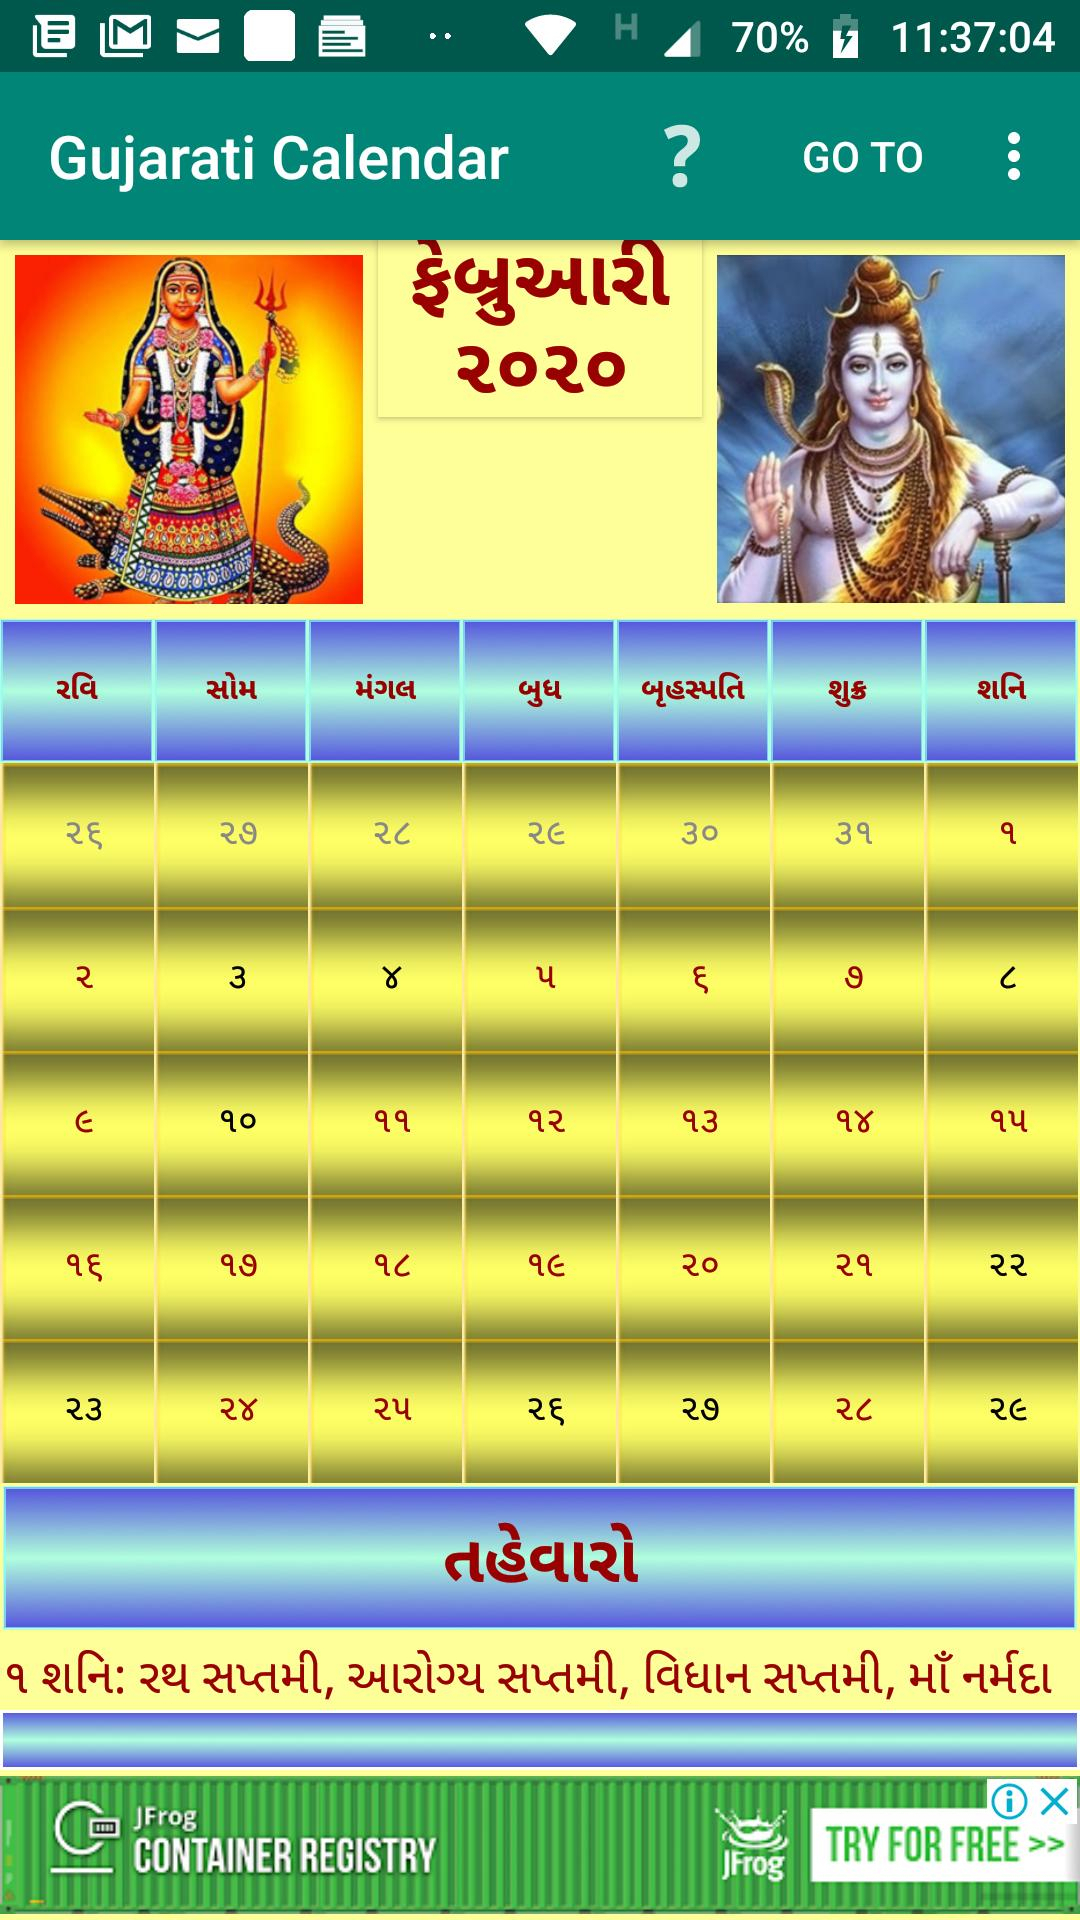 Gujarati Calendar 2020 Для Андроид  Скачать Apk with regard to Gujarati Month Calendar 2020